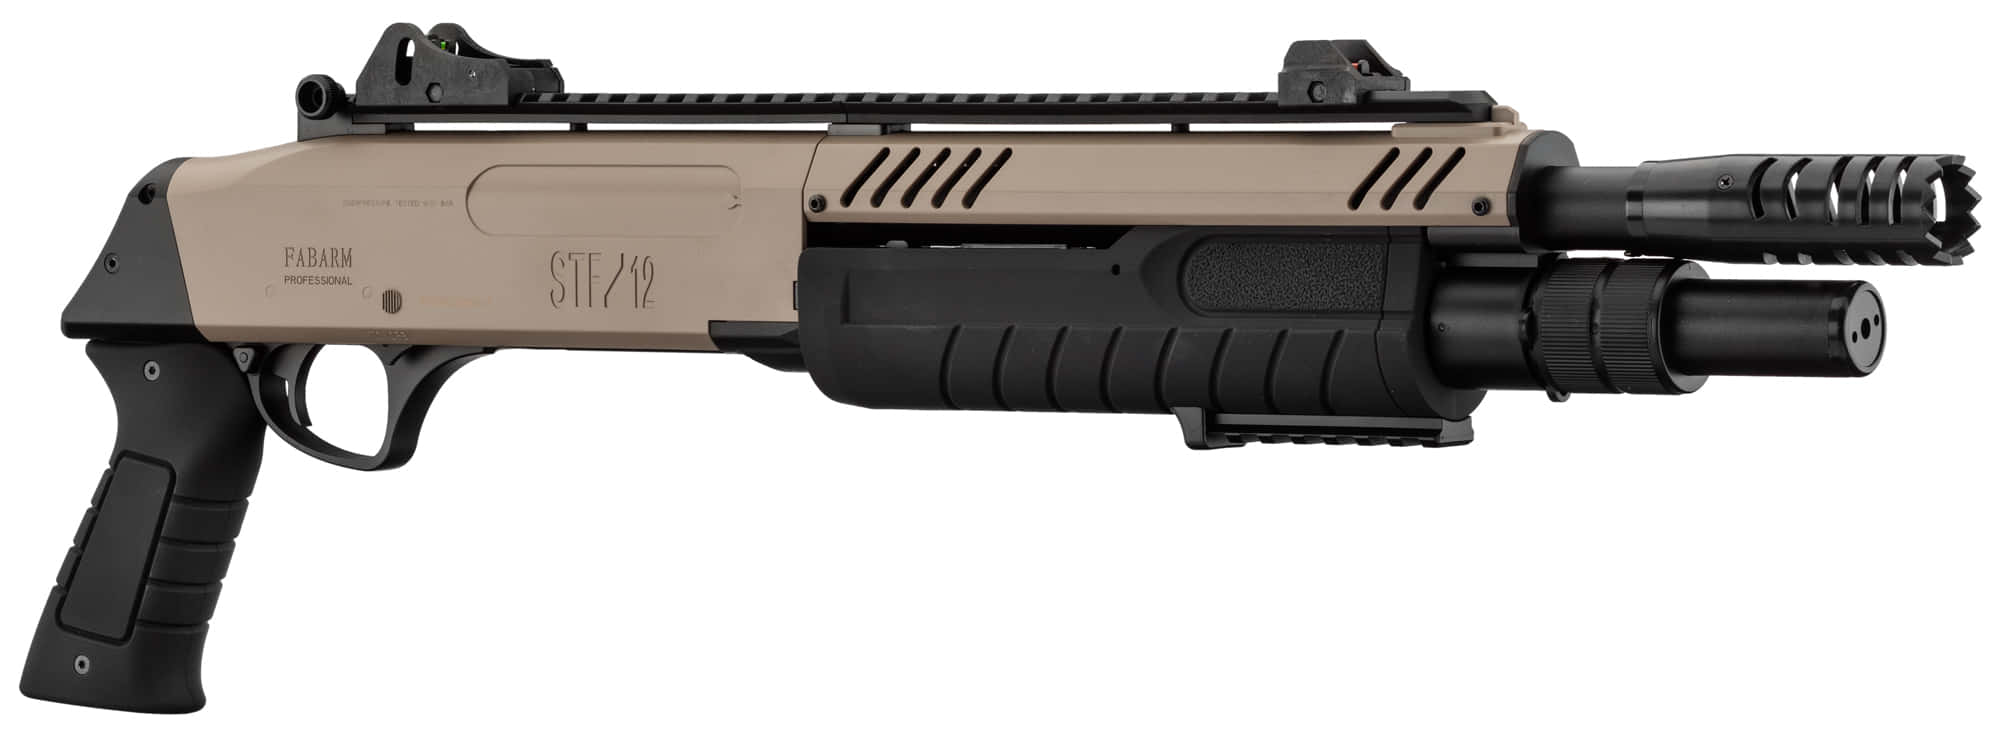 Photo FABARM STF/12-11 SHORT spring 3 shots fde 0,8j - BO MANUFACTURE